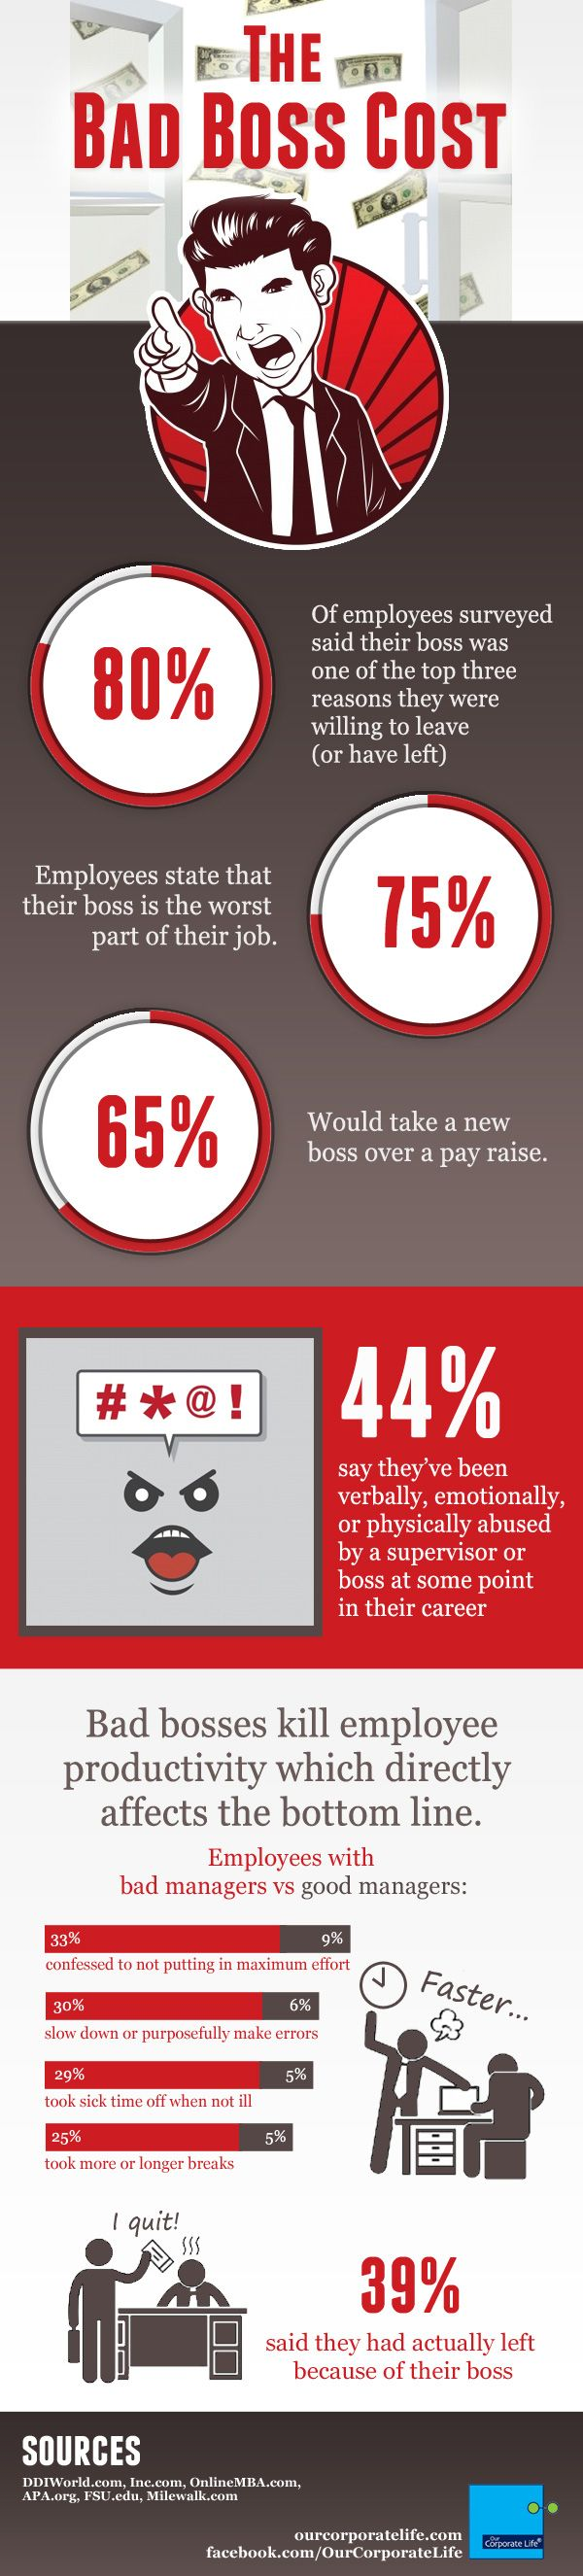 Infographic: The Bad Boss Cost | Our Corporate Life